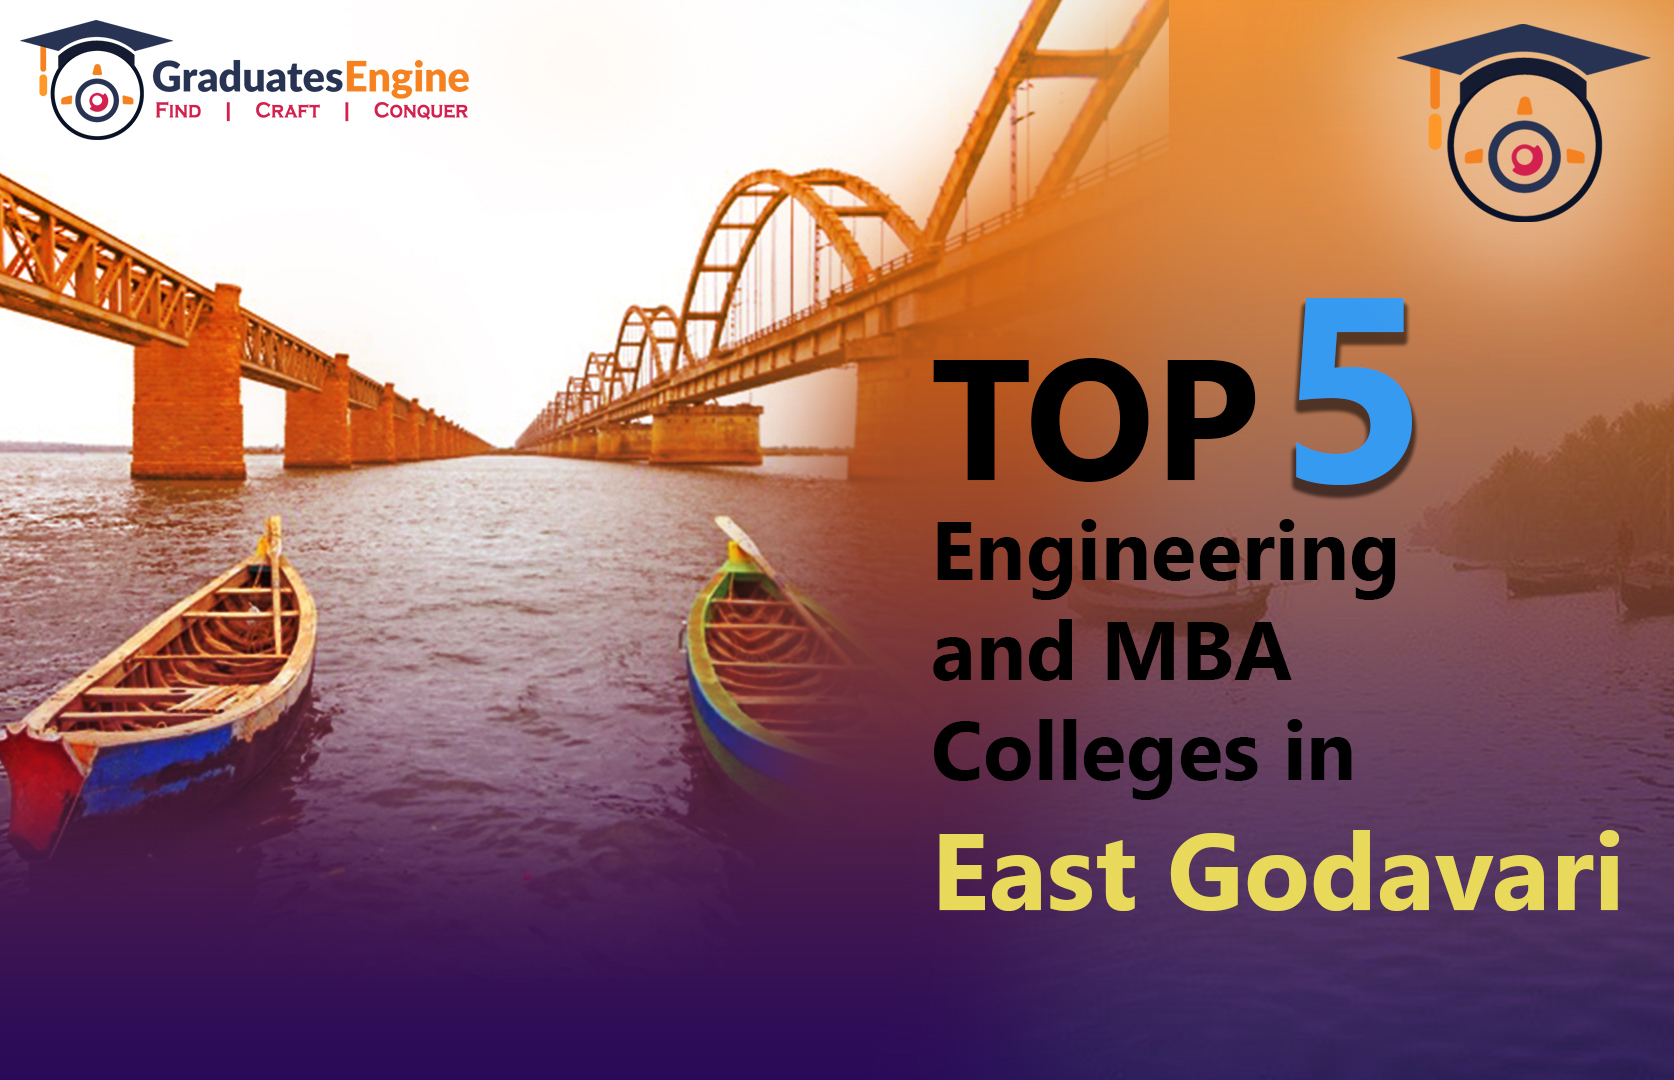 Top Five Engineering and MBA Colleges in East Godavari